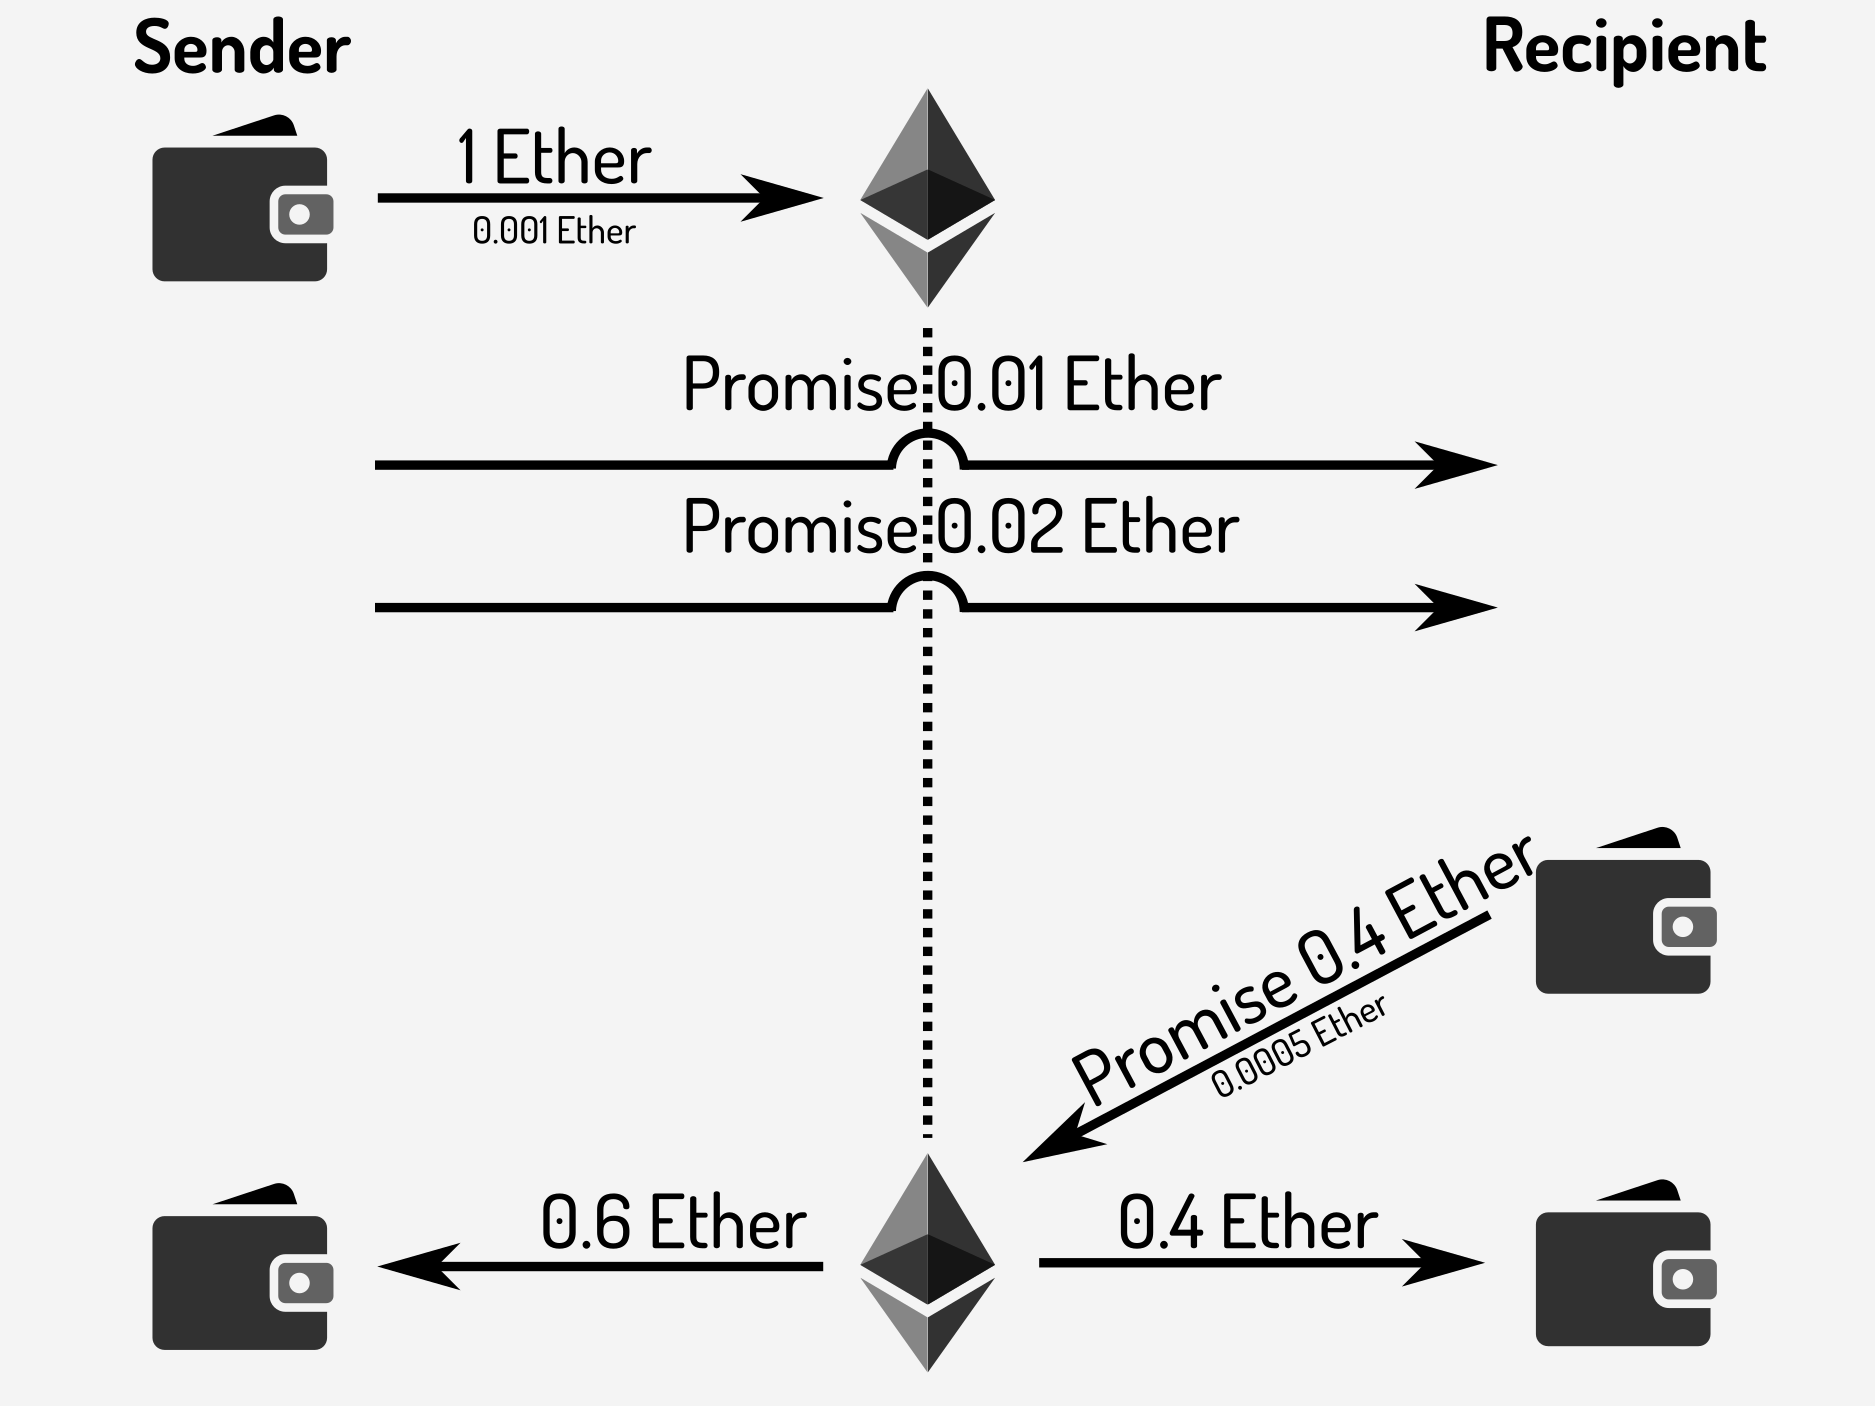 image from Introduction to Ethereum payment channels